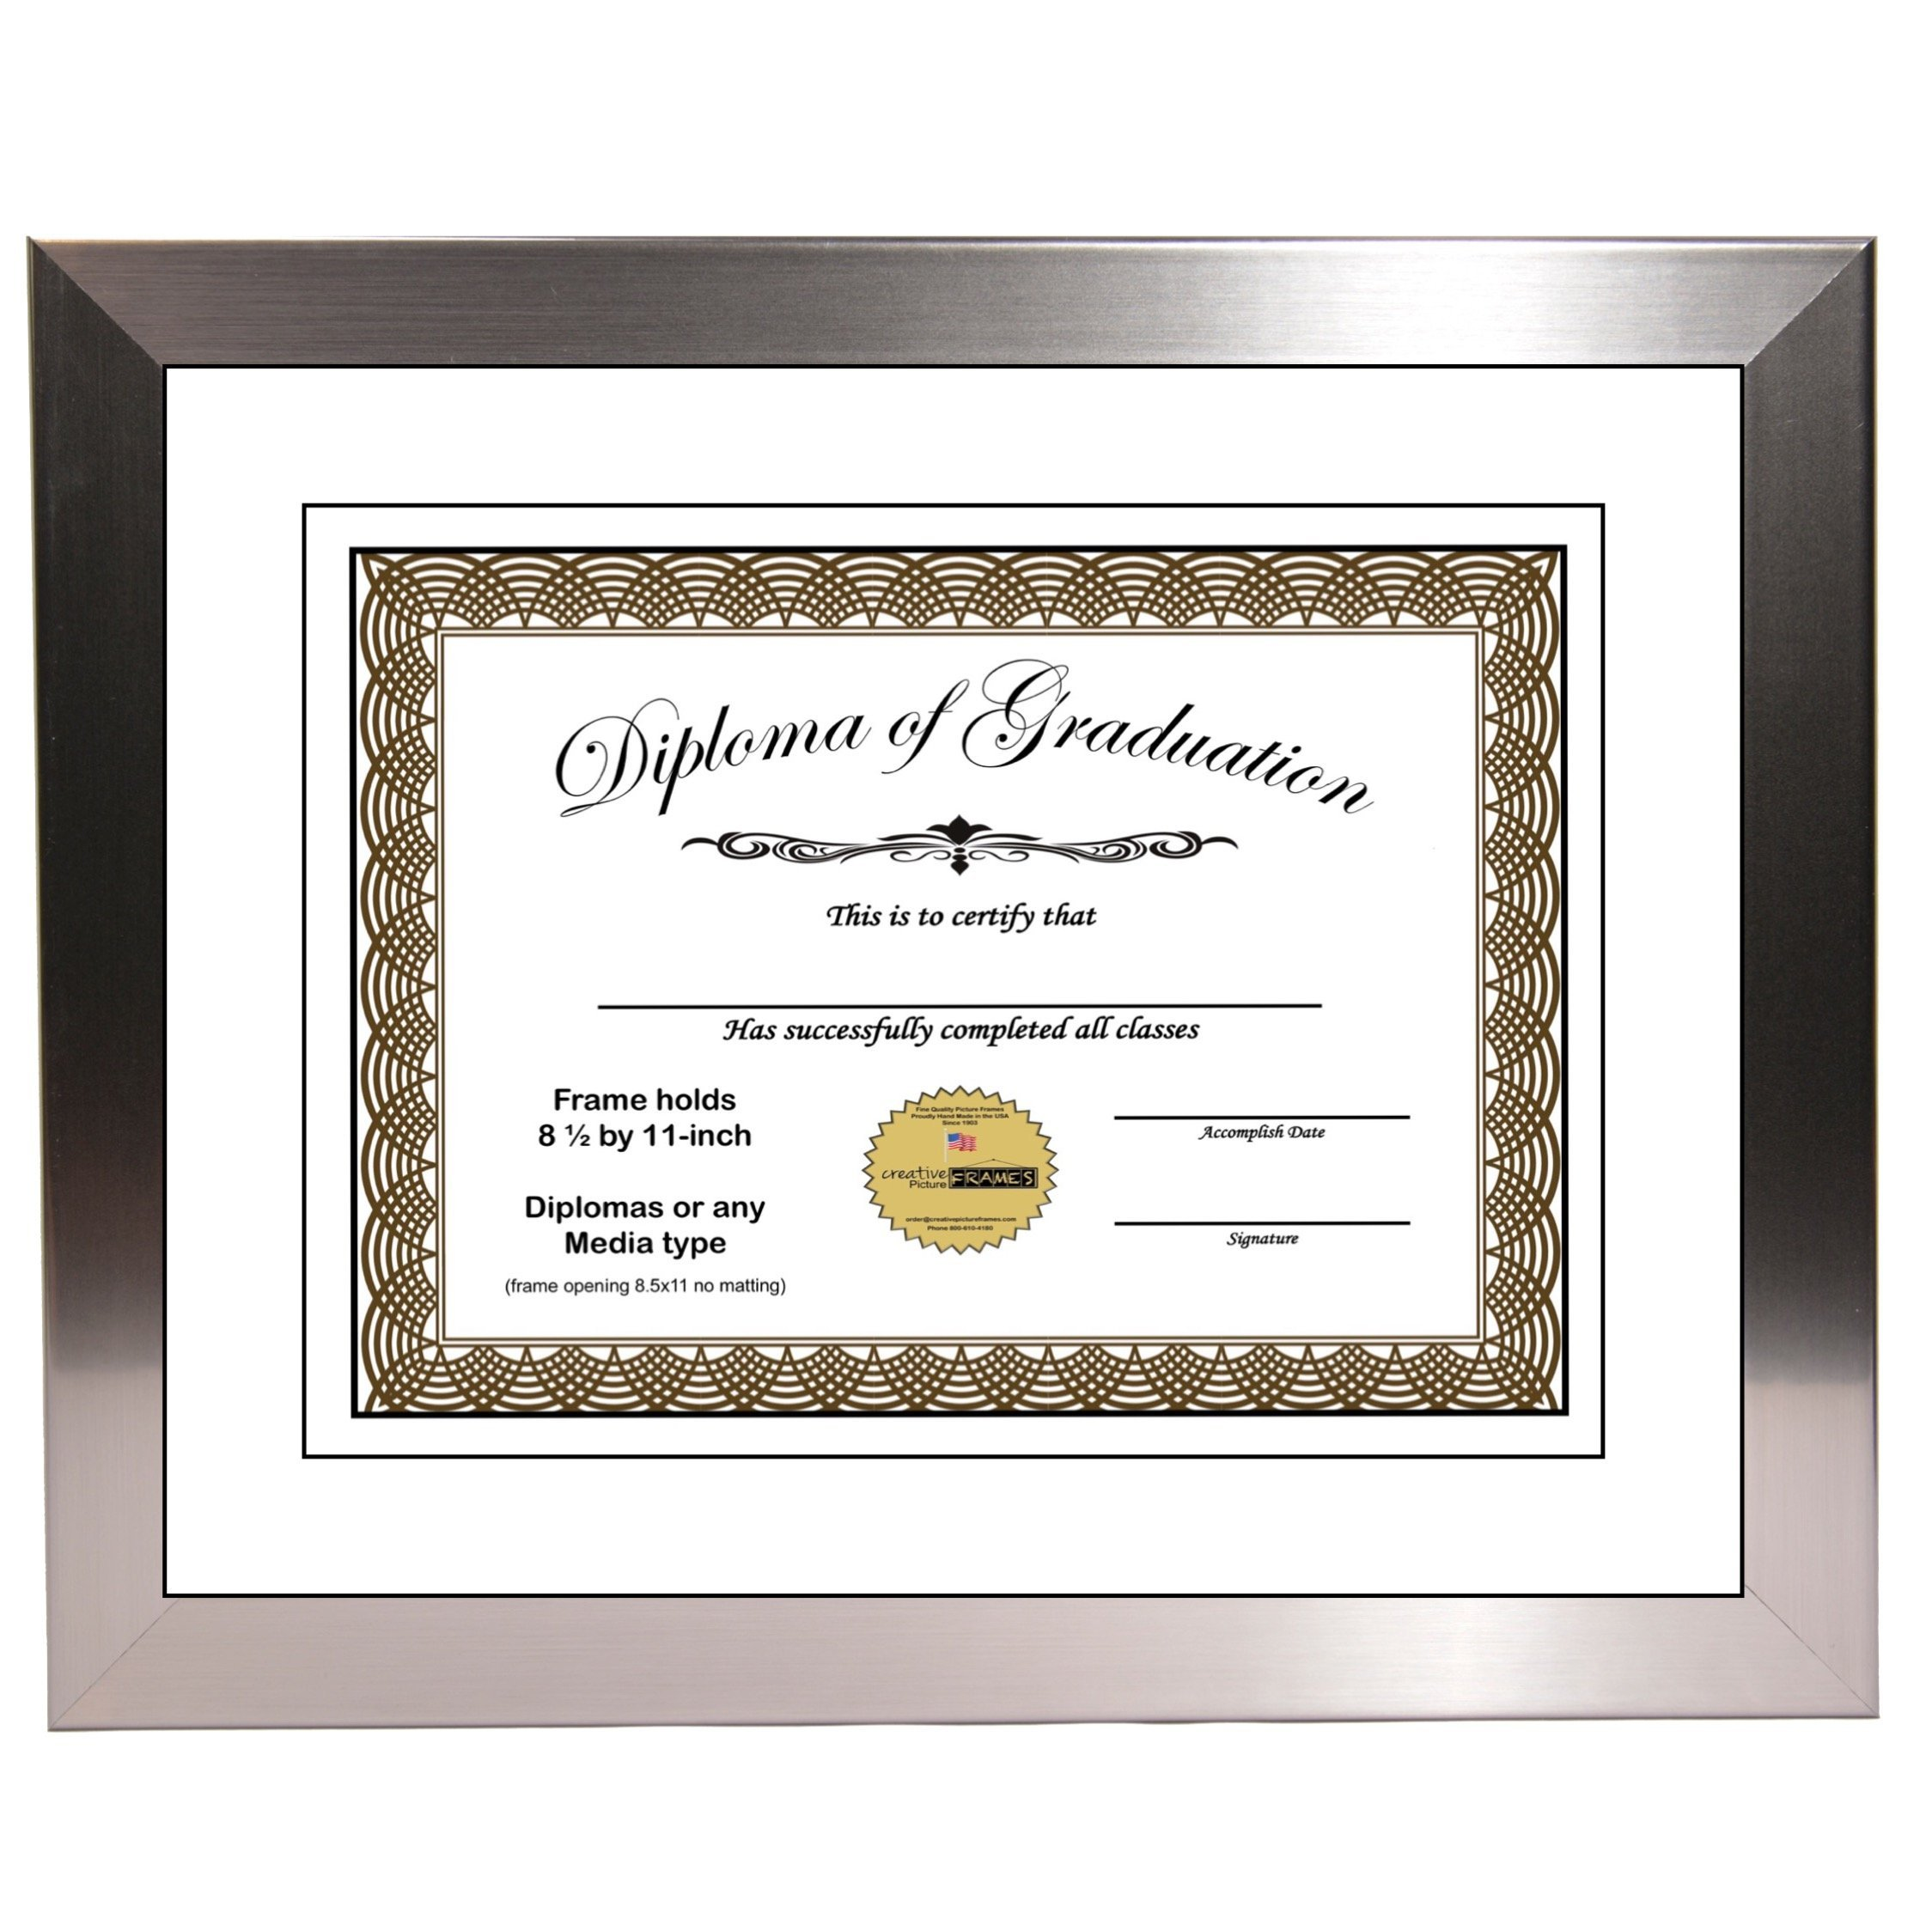 CreativePF [11x14ss-w] Stainless Steel Finish Diploma Frame with 11x14-inch Black Mat to Hold 8.5 by 11-inch Graduation Documents w/Stand and Wall Hanger by Creative Picture Frames